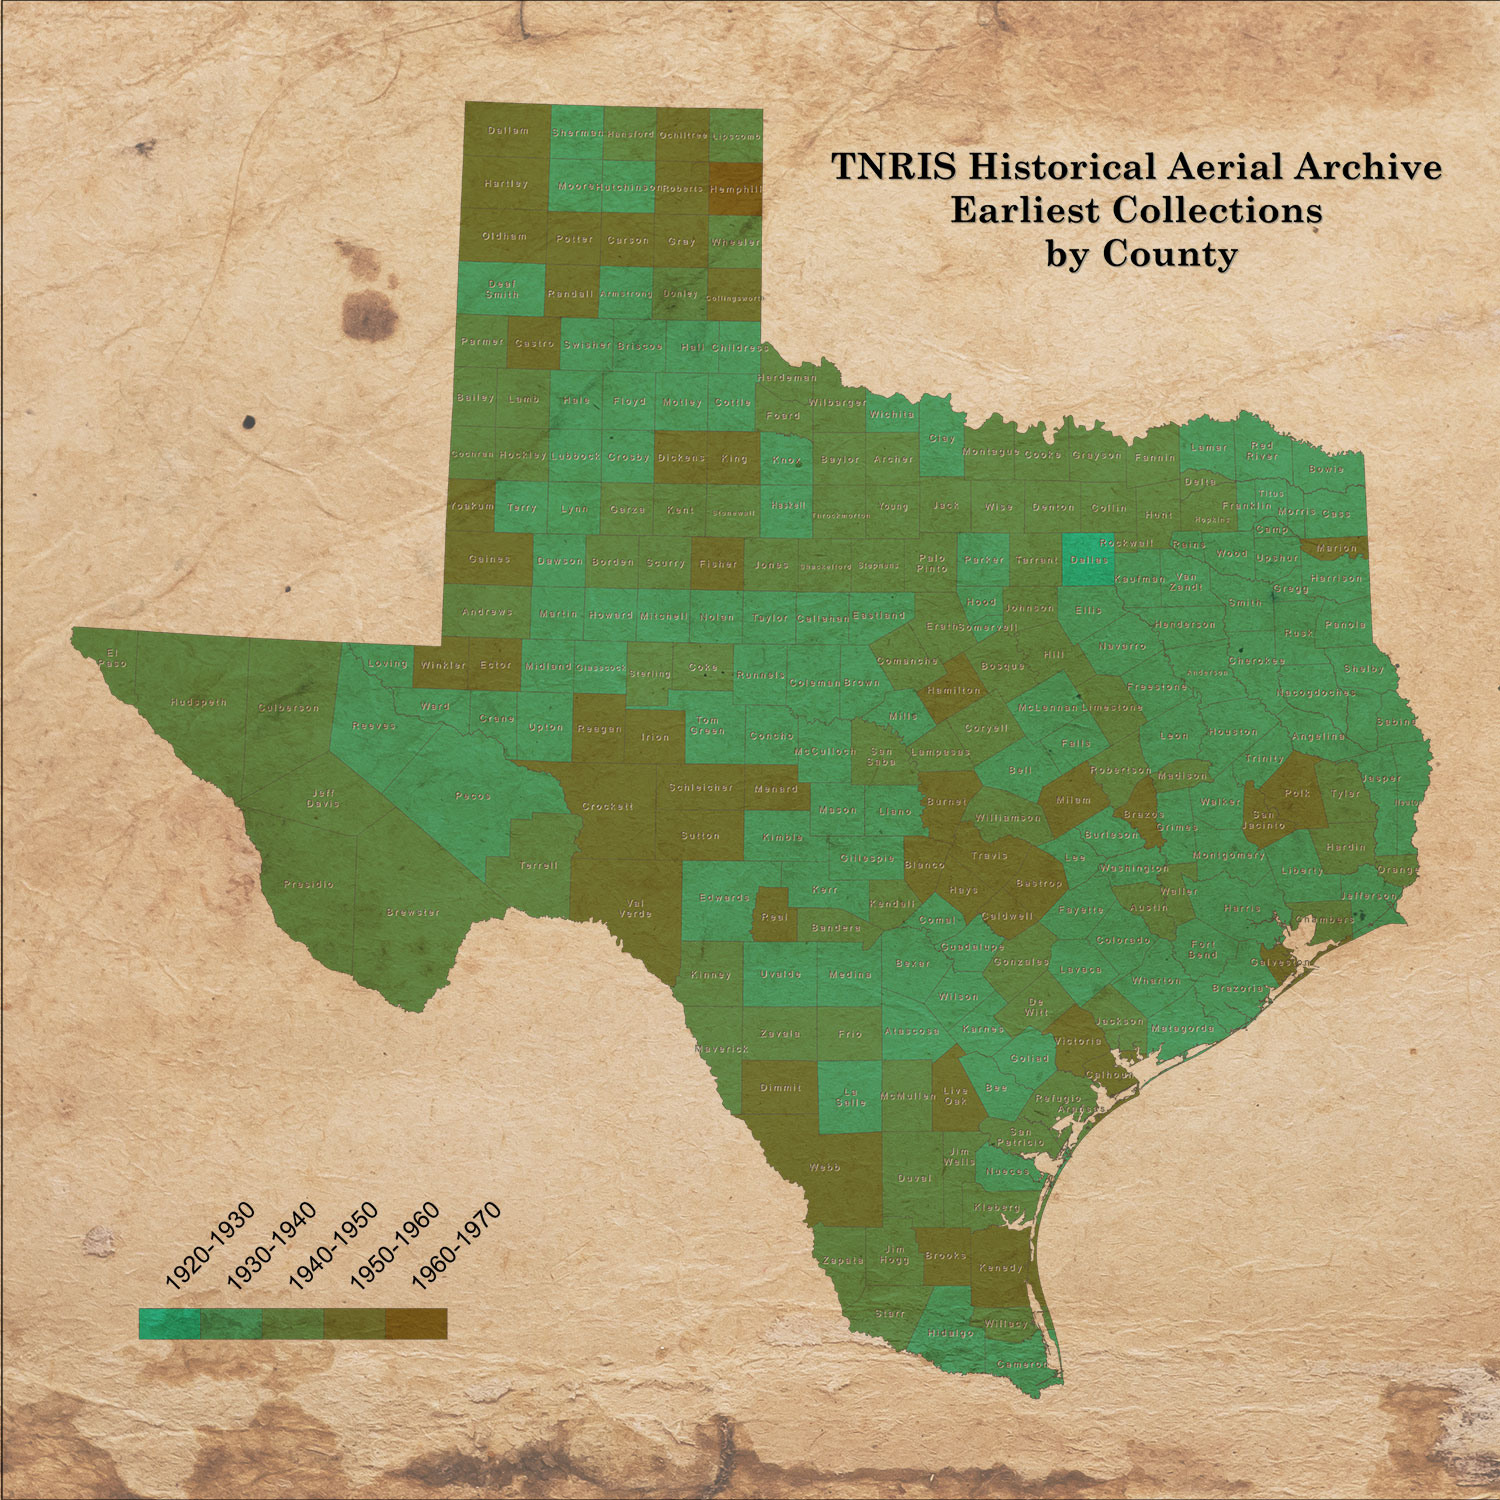 A large preview of the Historical Aerial Availability image